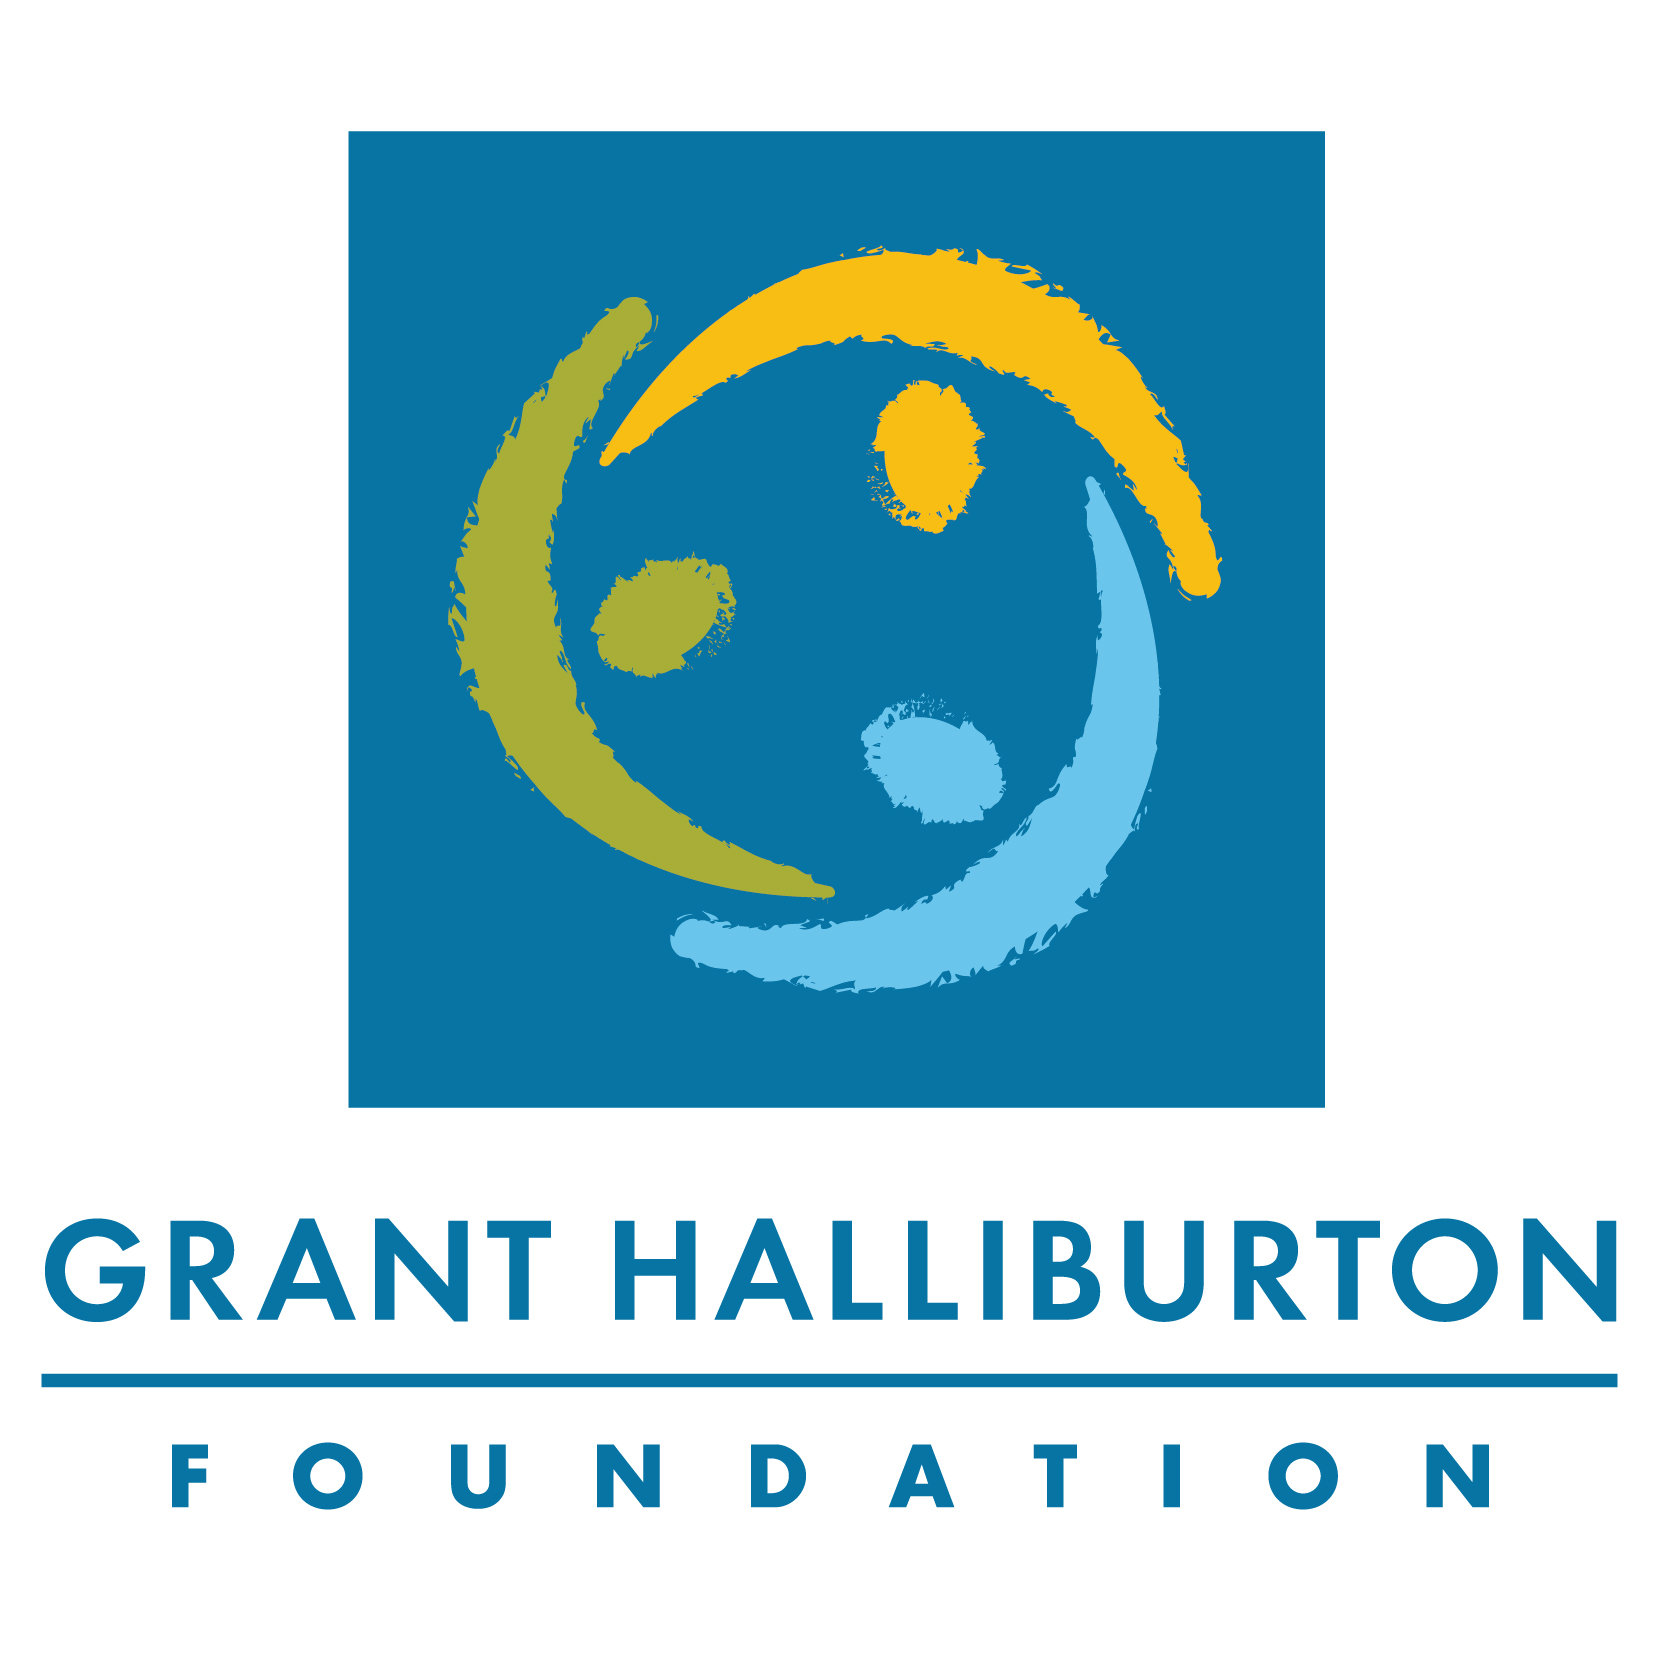 Grant Halliburton Foundation